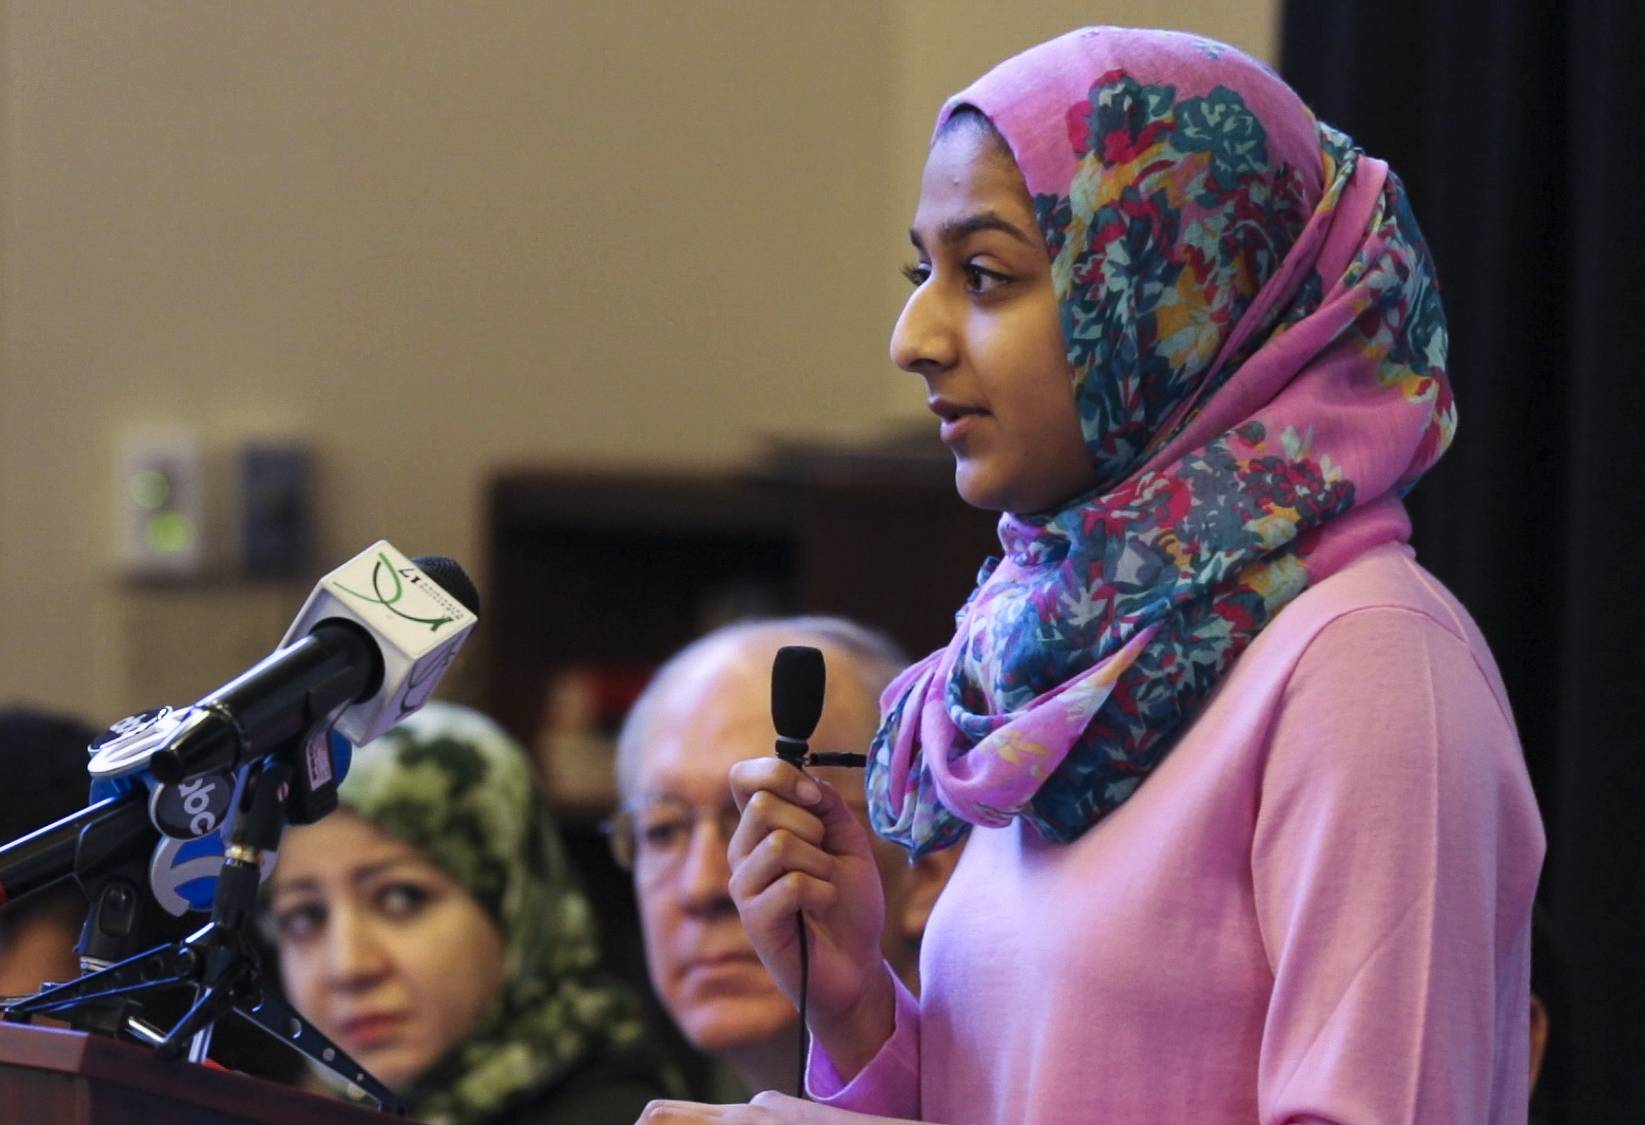 Samia Abdul-Qadir, a junior at Naperville North, recently talked about being harassed at school during a discussion hosted by congressman Bill Foster at the Islamic Center of Naperville.